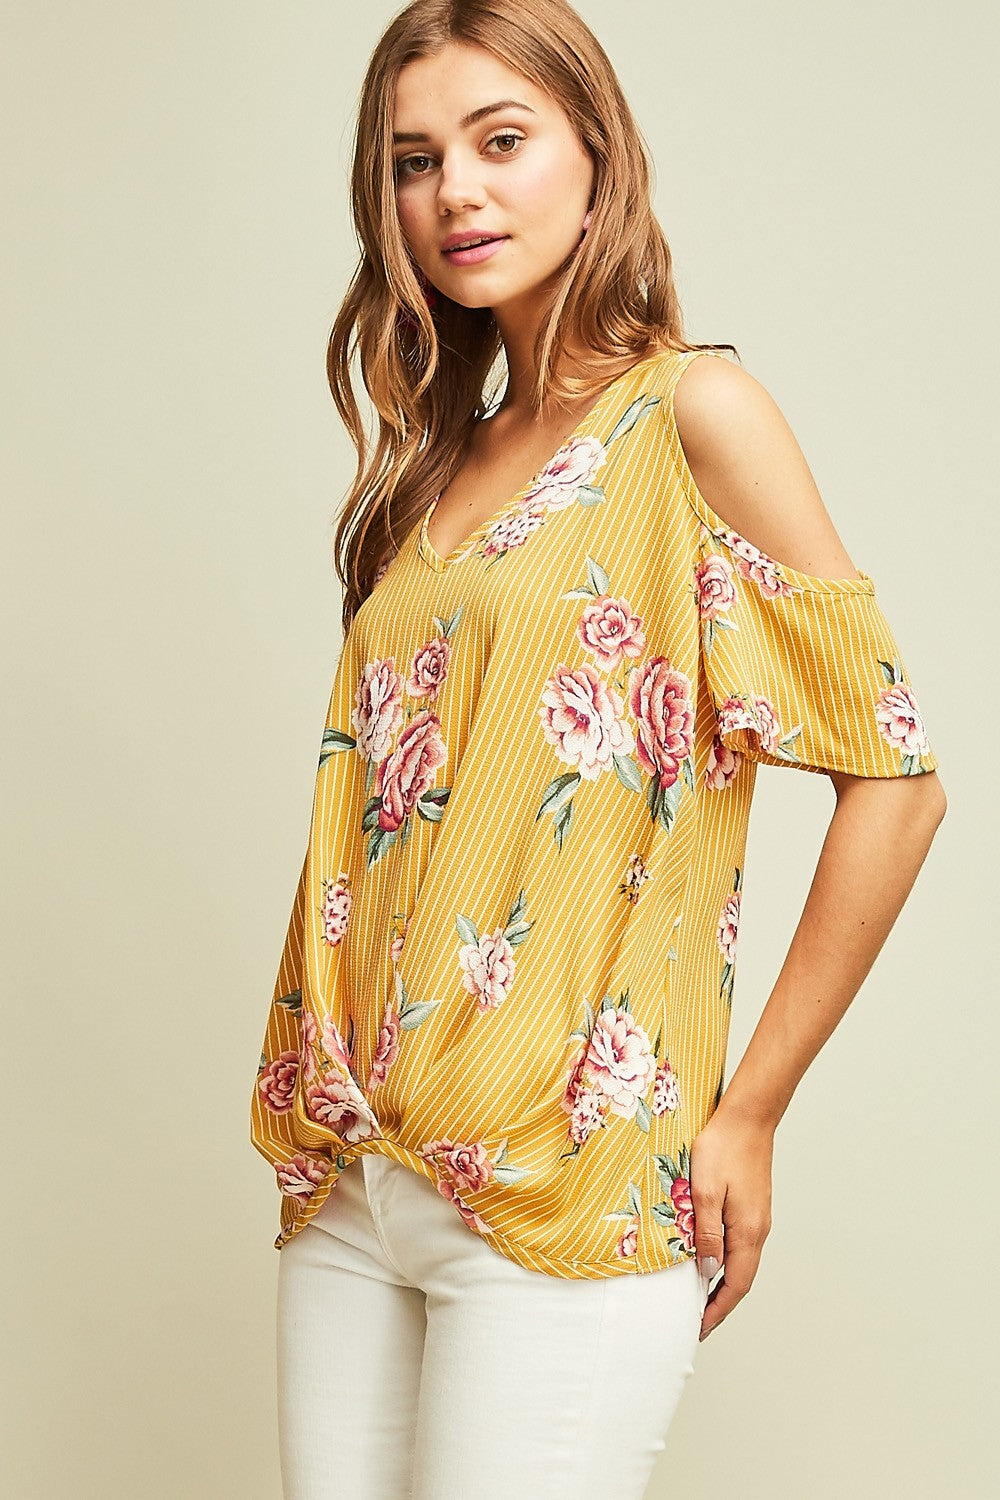 Pin-Striped Floral Top